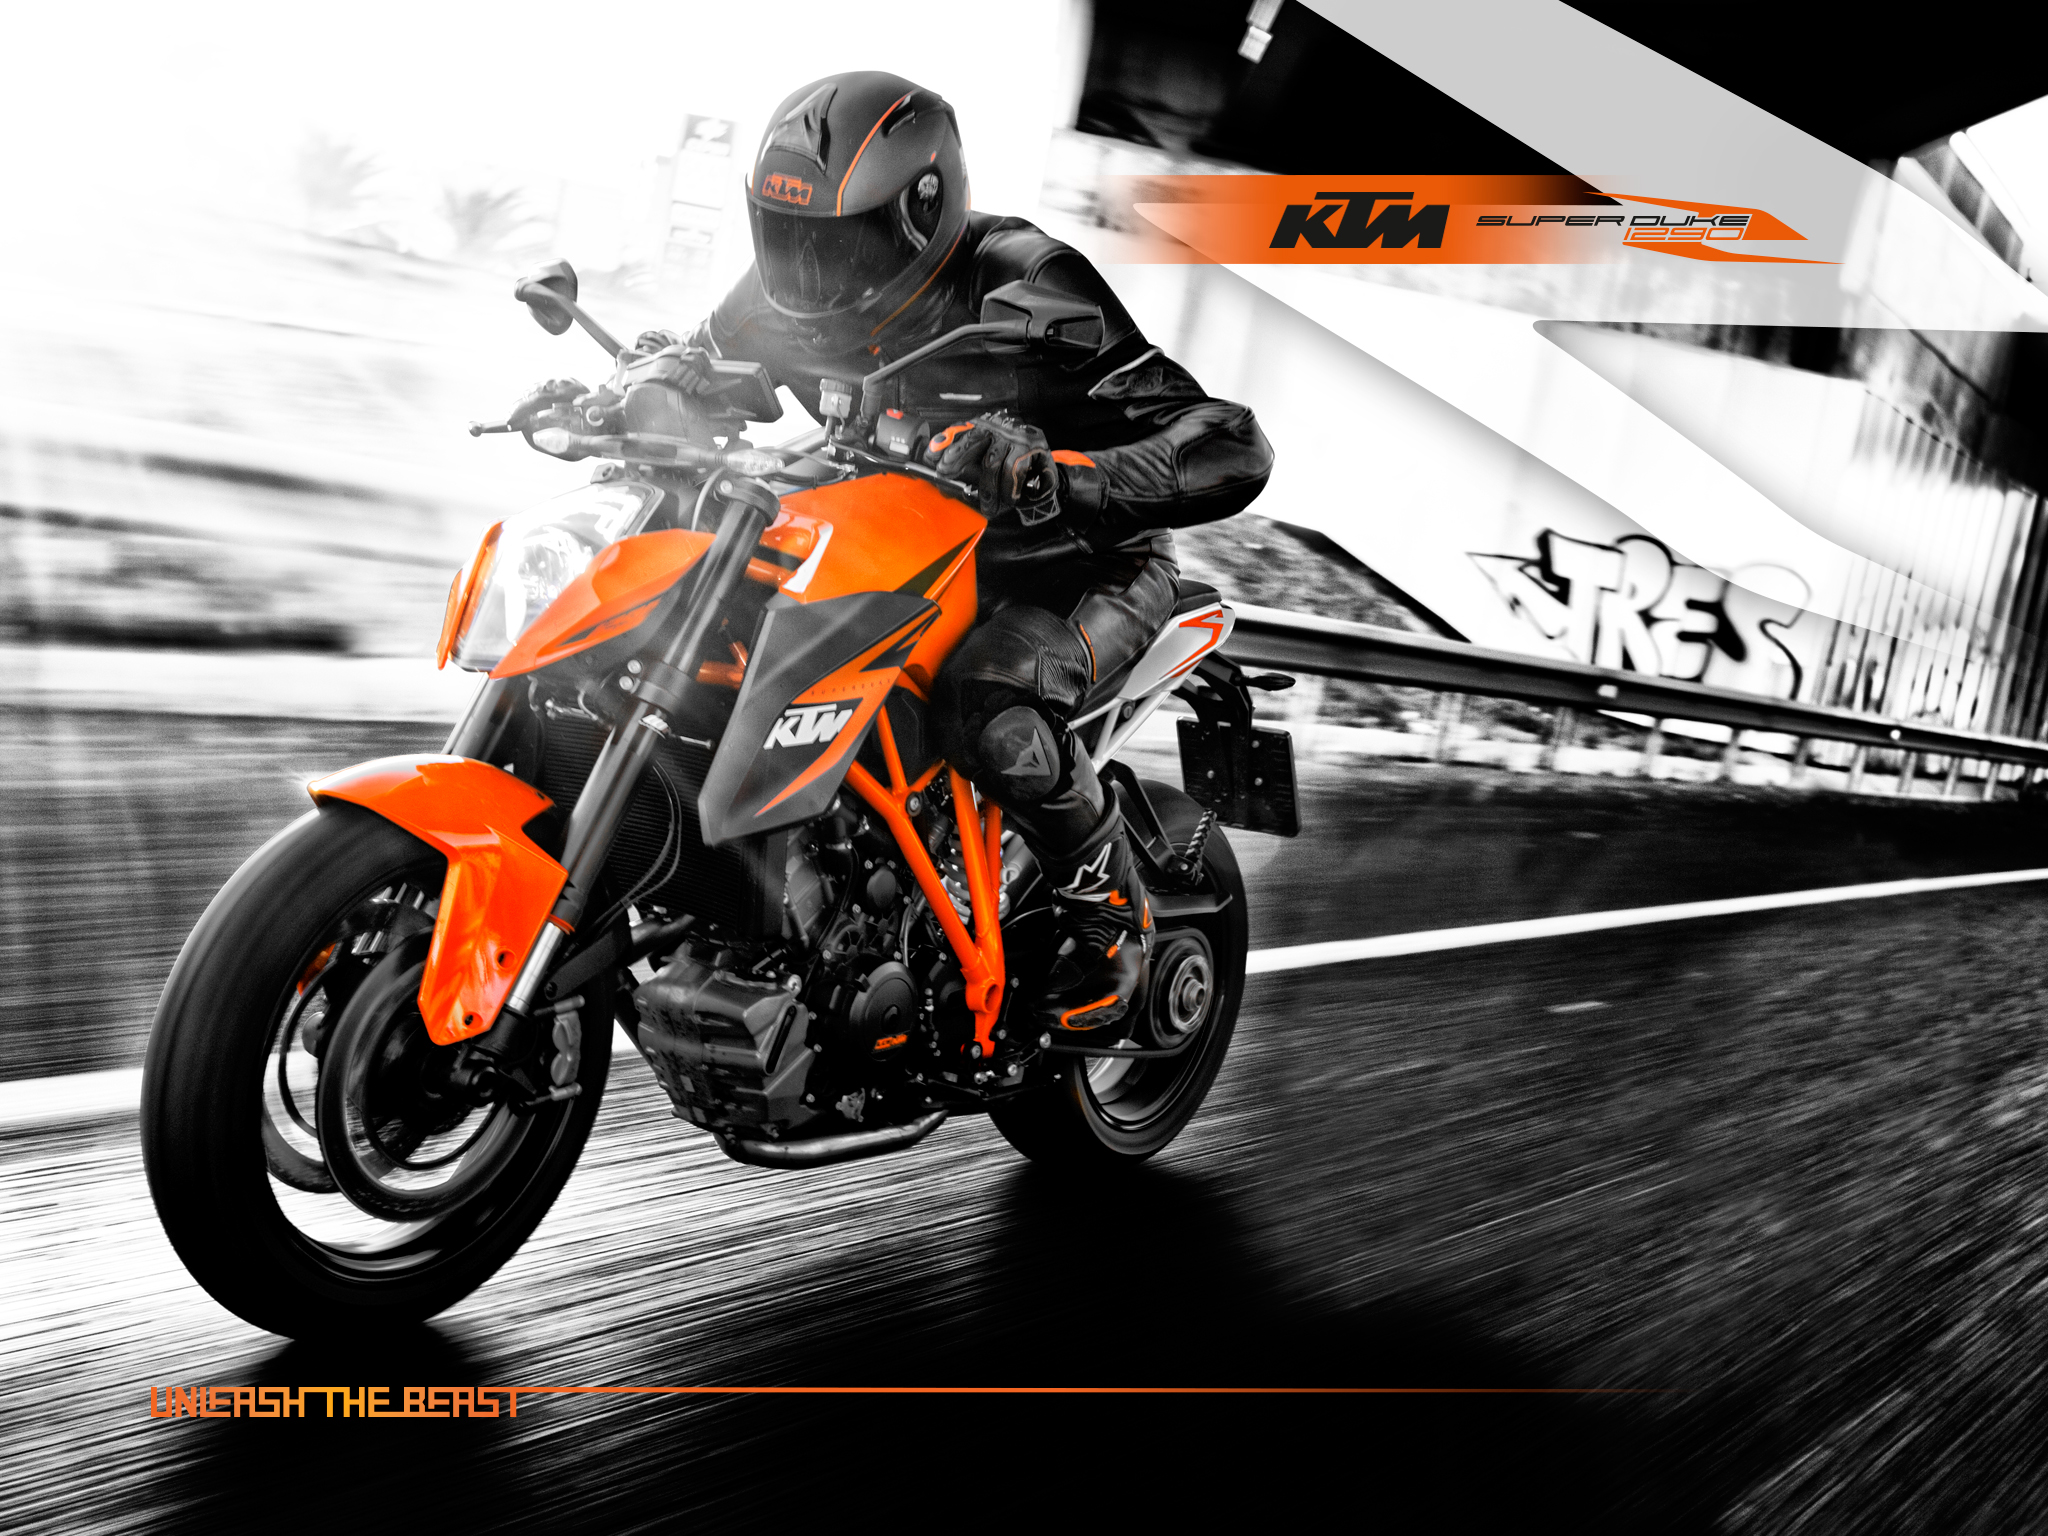 ktm 1290 super duke r official pics and specs surface. Black Bedroom Furniture Sets. Home Design Ideas